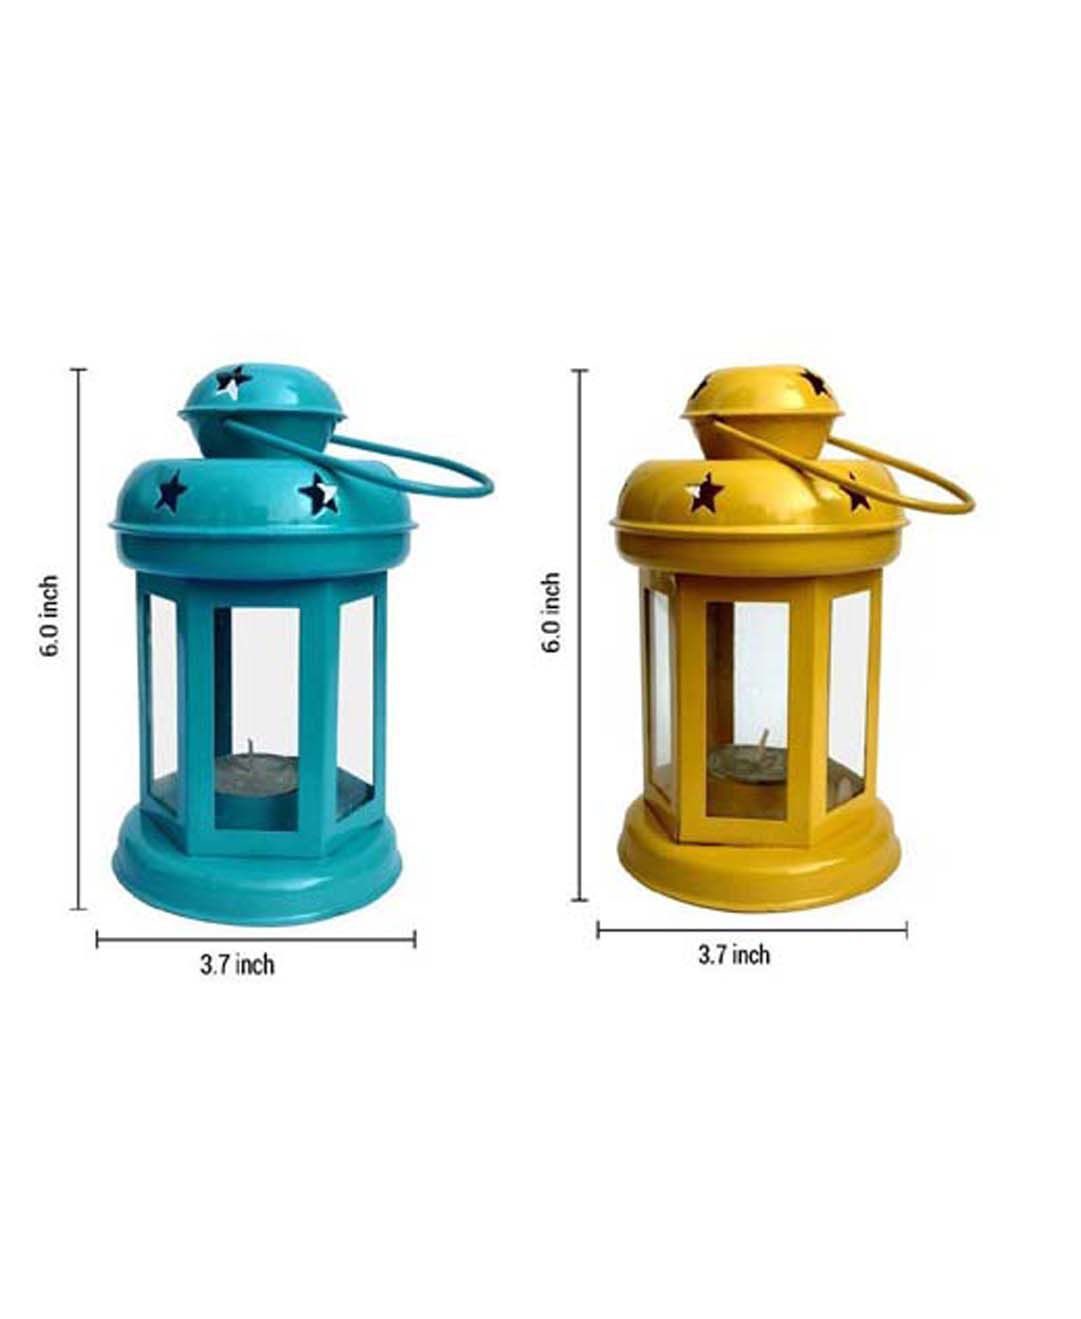 DECORATE INDIA Sky and Yellow color iron lantern t light candle holder set Hanging Lanterns 15   Pack of 1